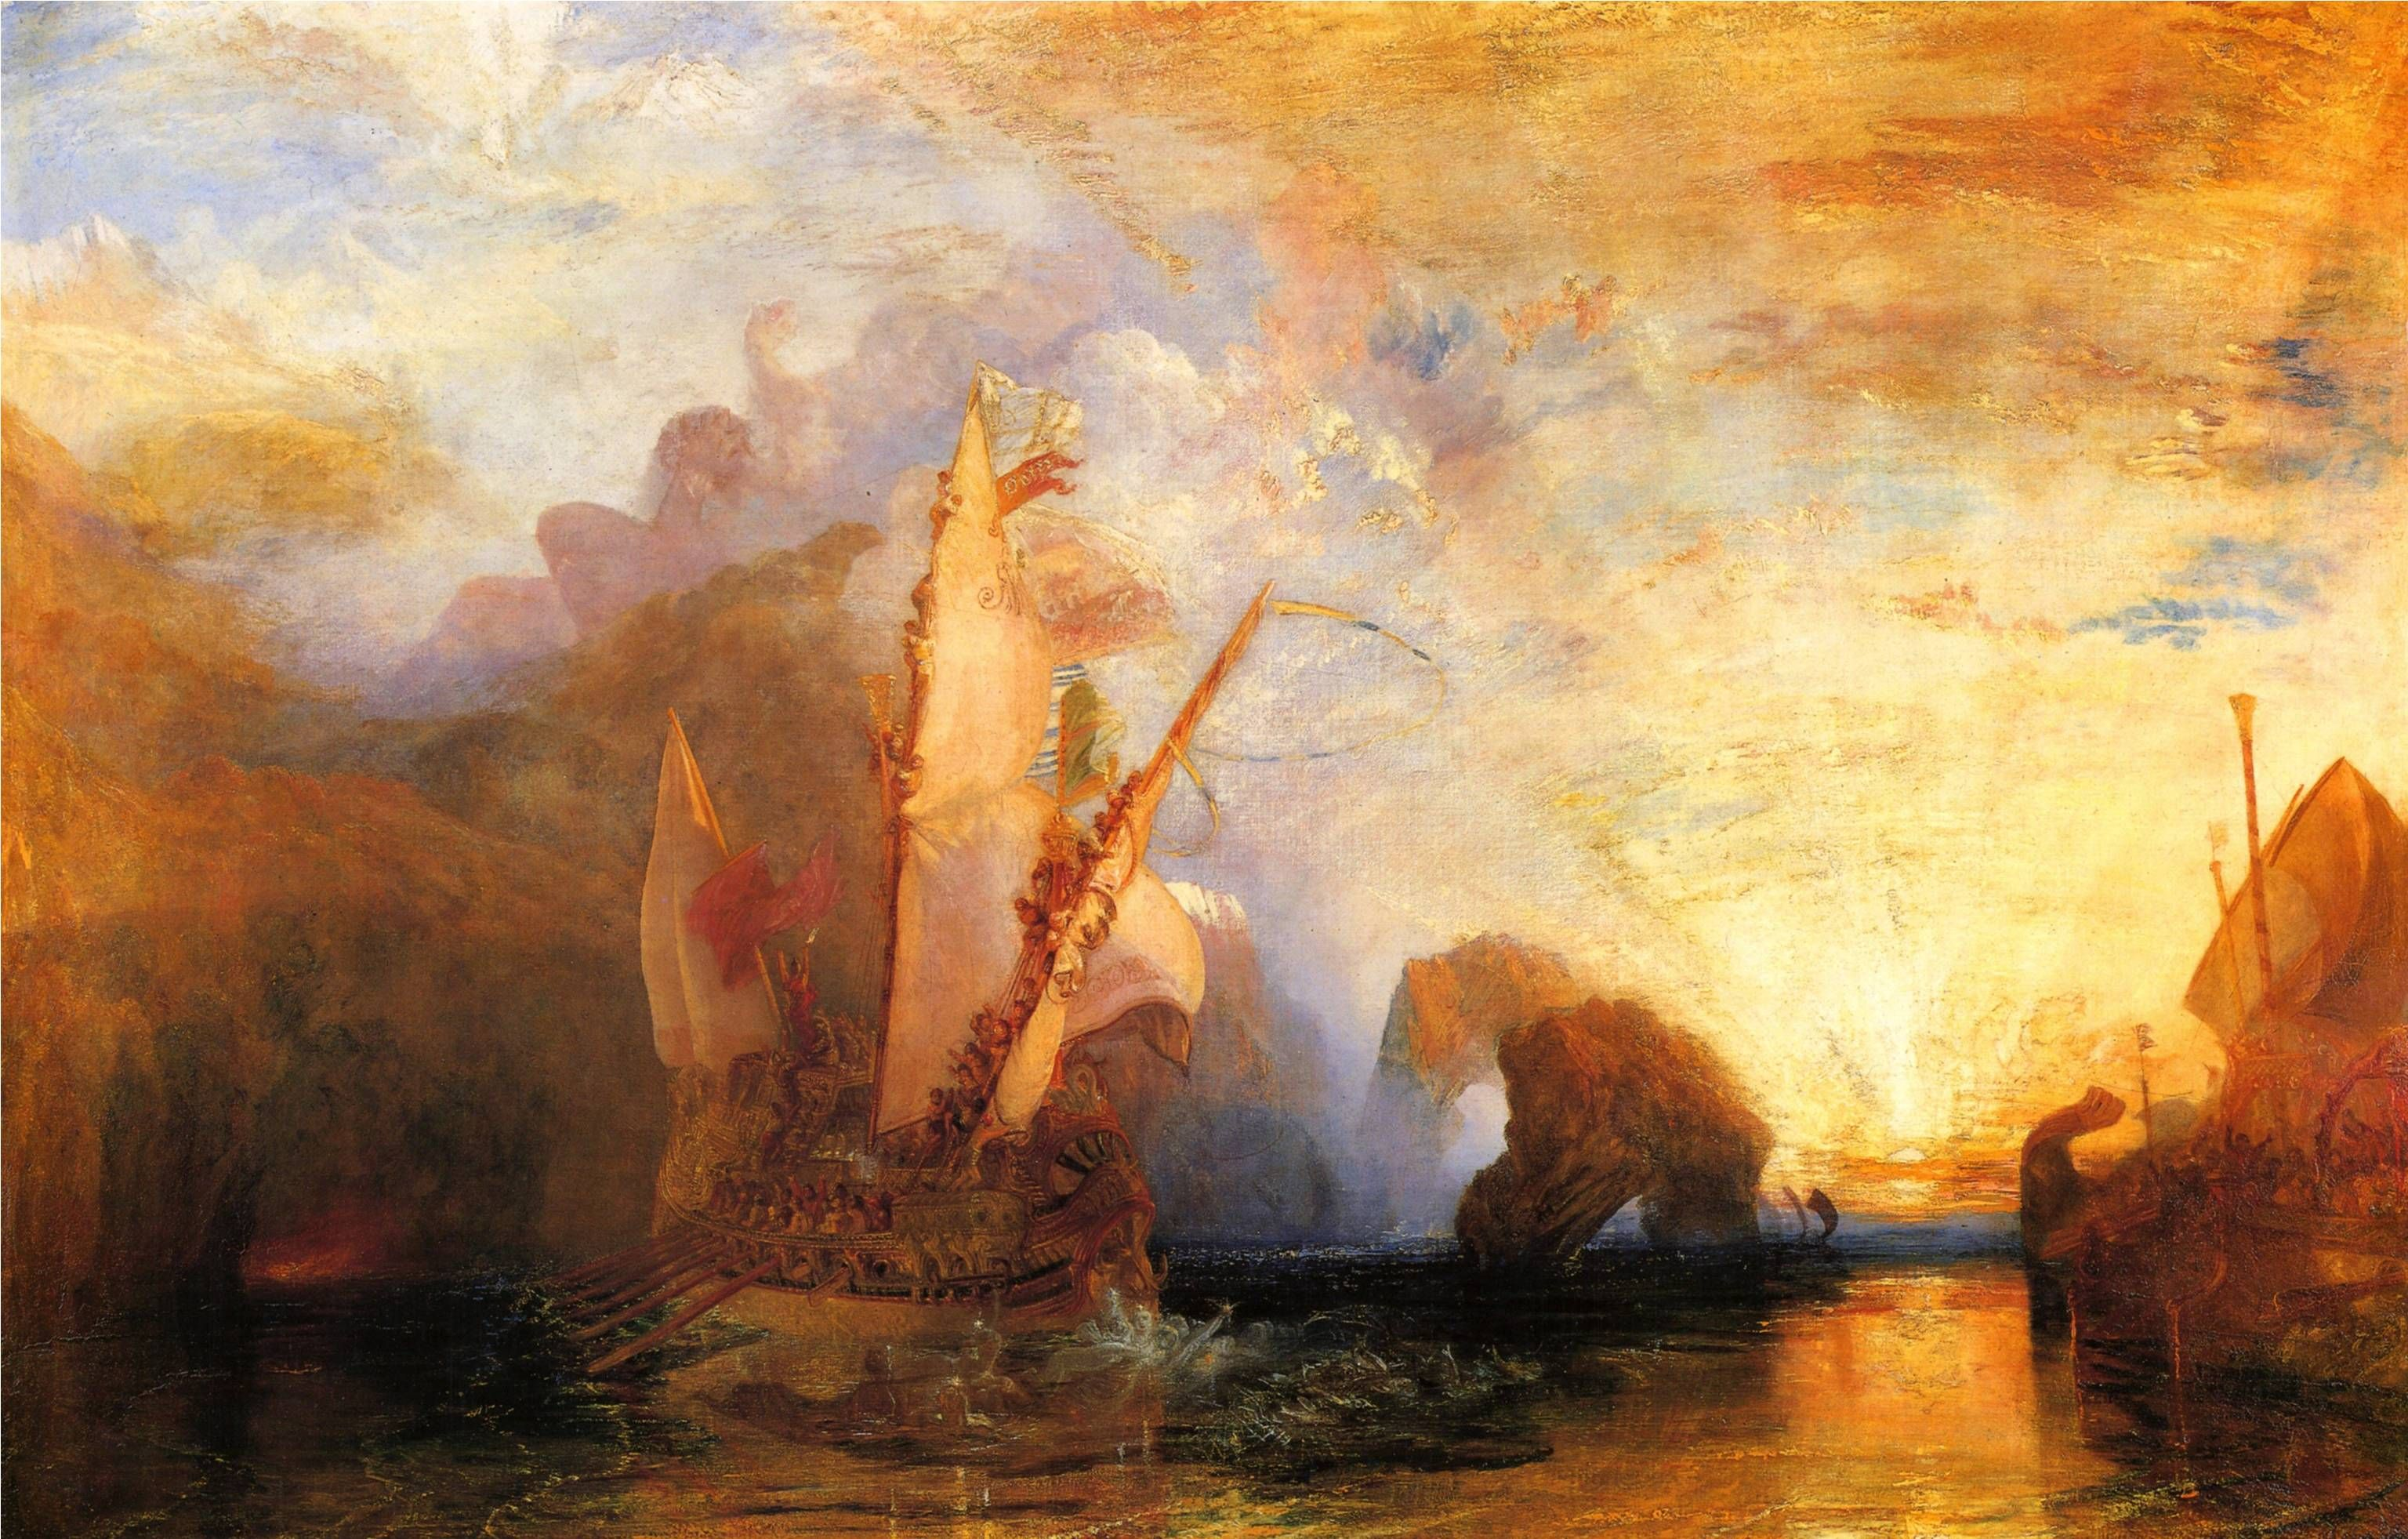 J.M.W Turner | Grace Hatton the Author's Blog | Turner painting, Joseph  mallord william turner, William turner